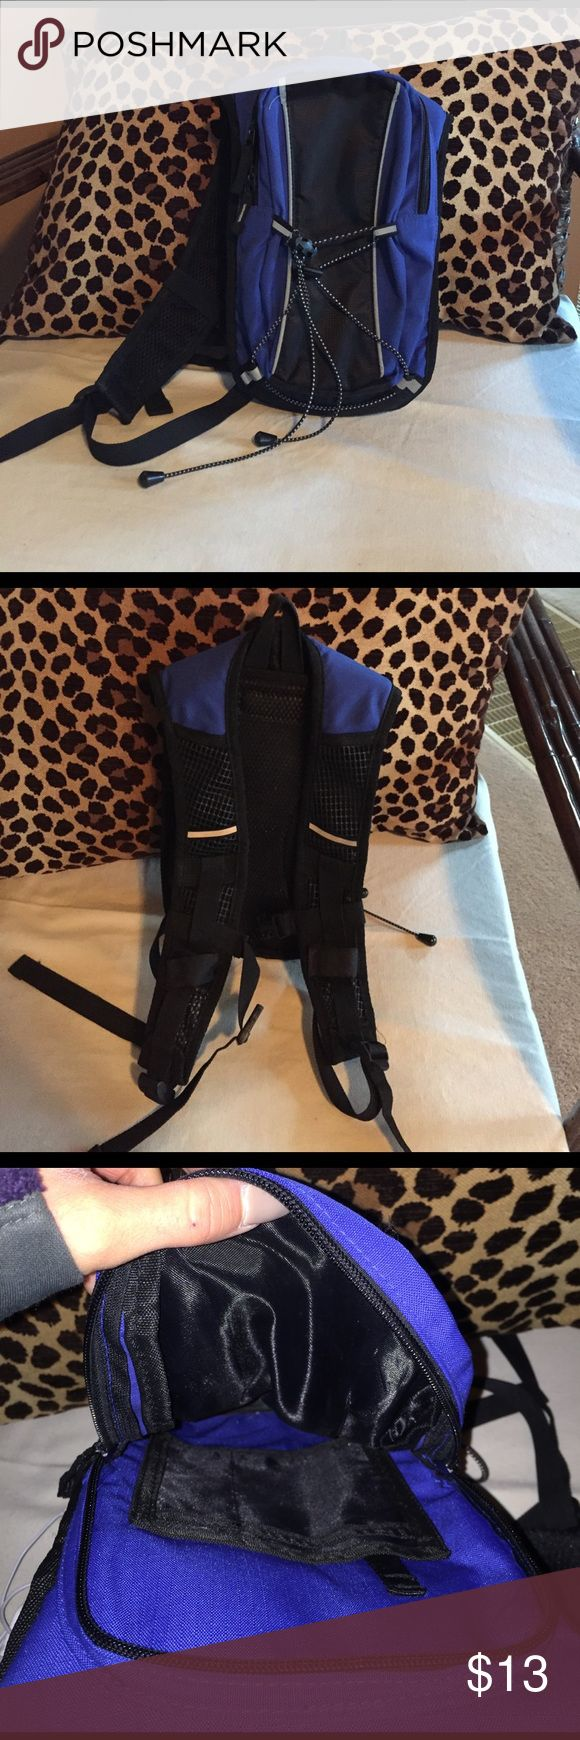 Small Hiking backpack Similar to camelback great shape 8x14 inches Bags Backpacks